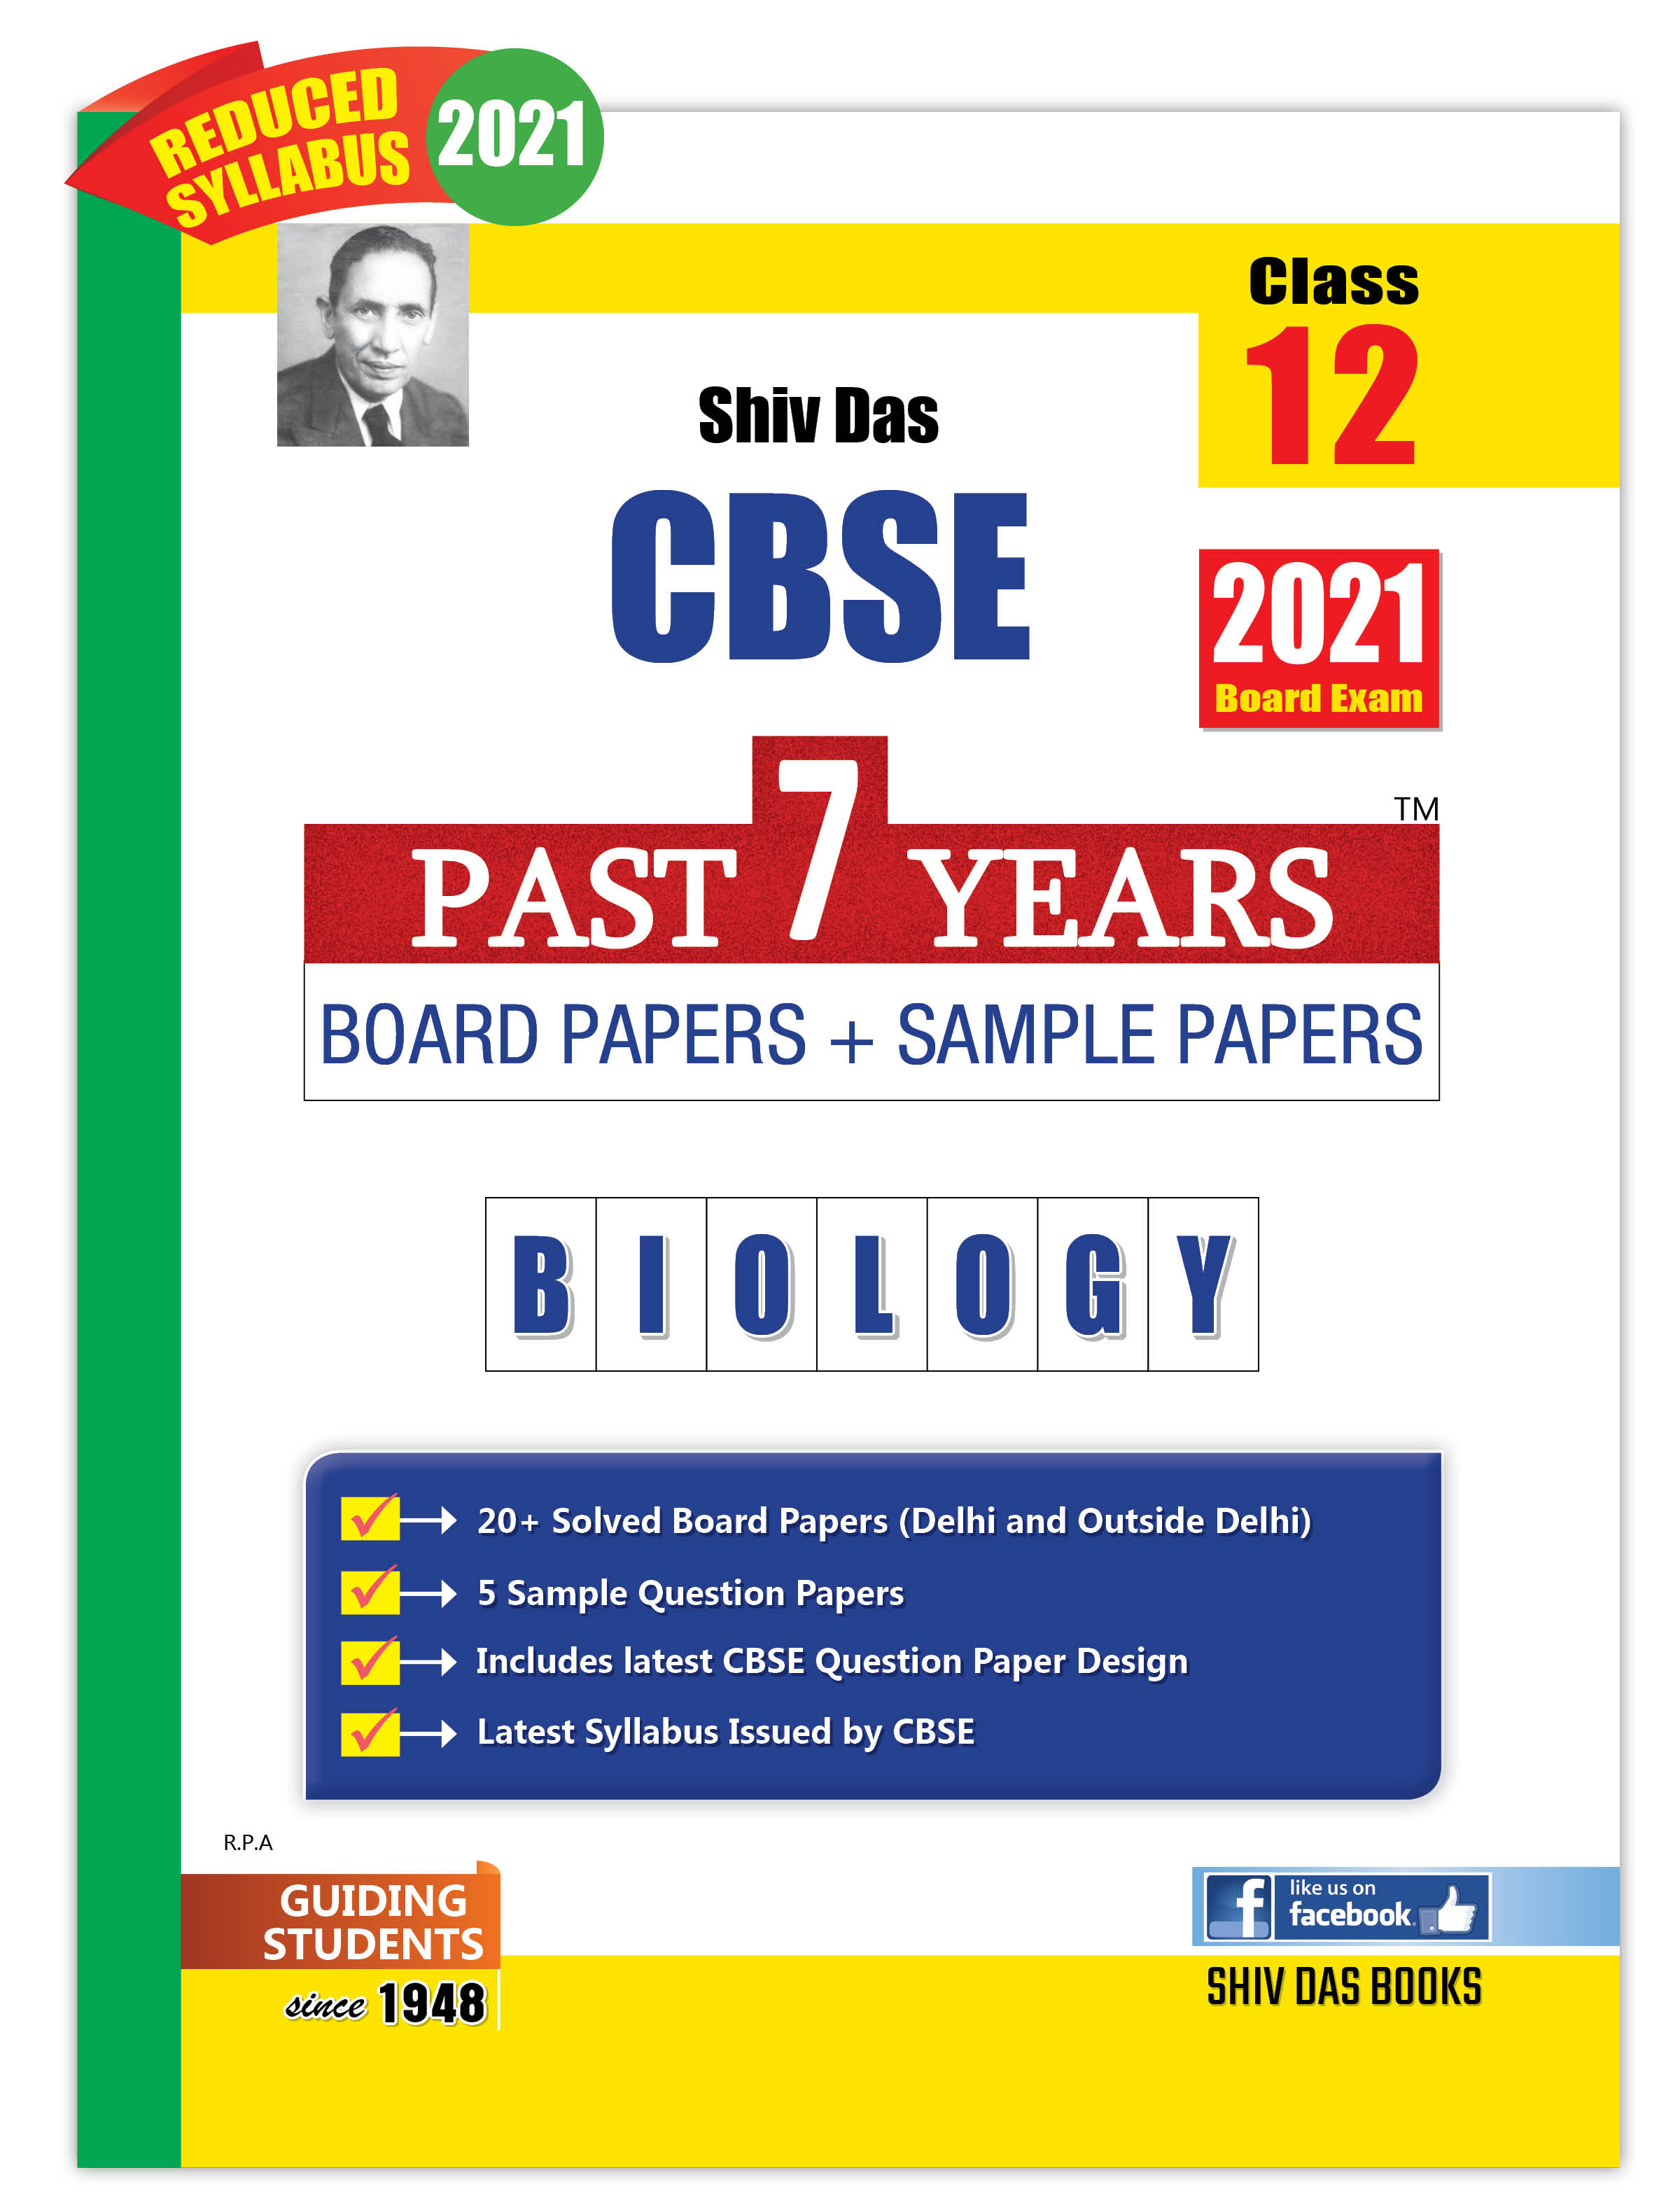 CBSE Past 7 Years Solved Board Papers and Sample Papers for Class 12 Biology By SHIVDAS (2021 Board Exam Edition)